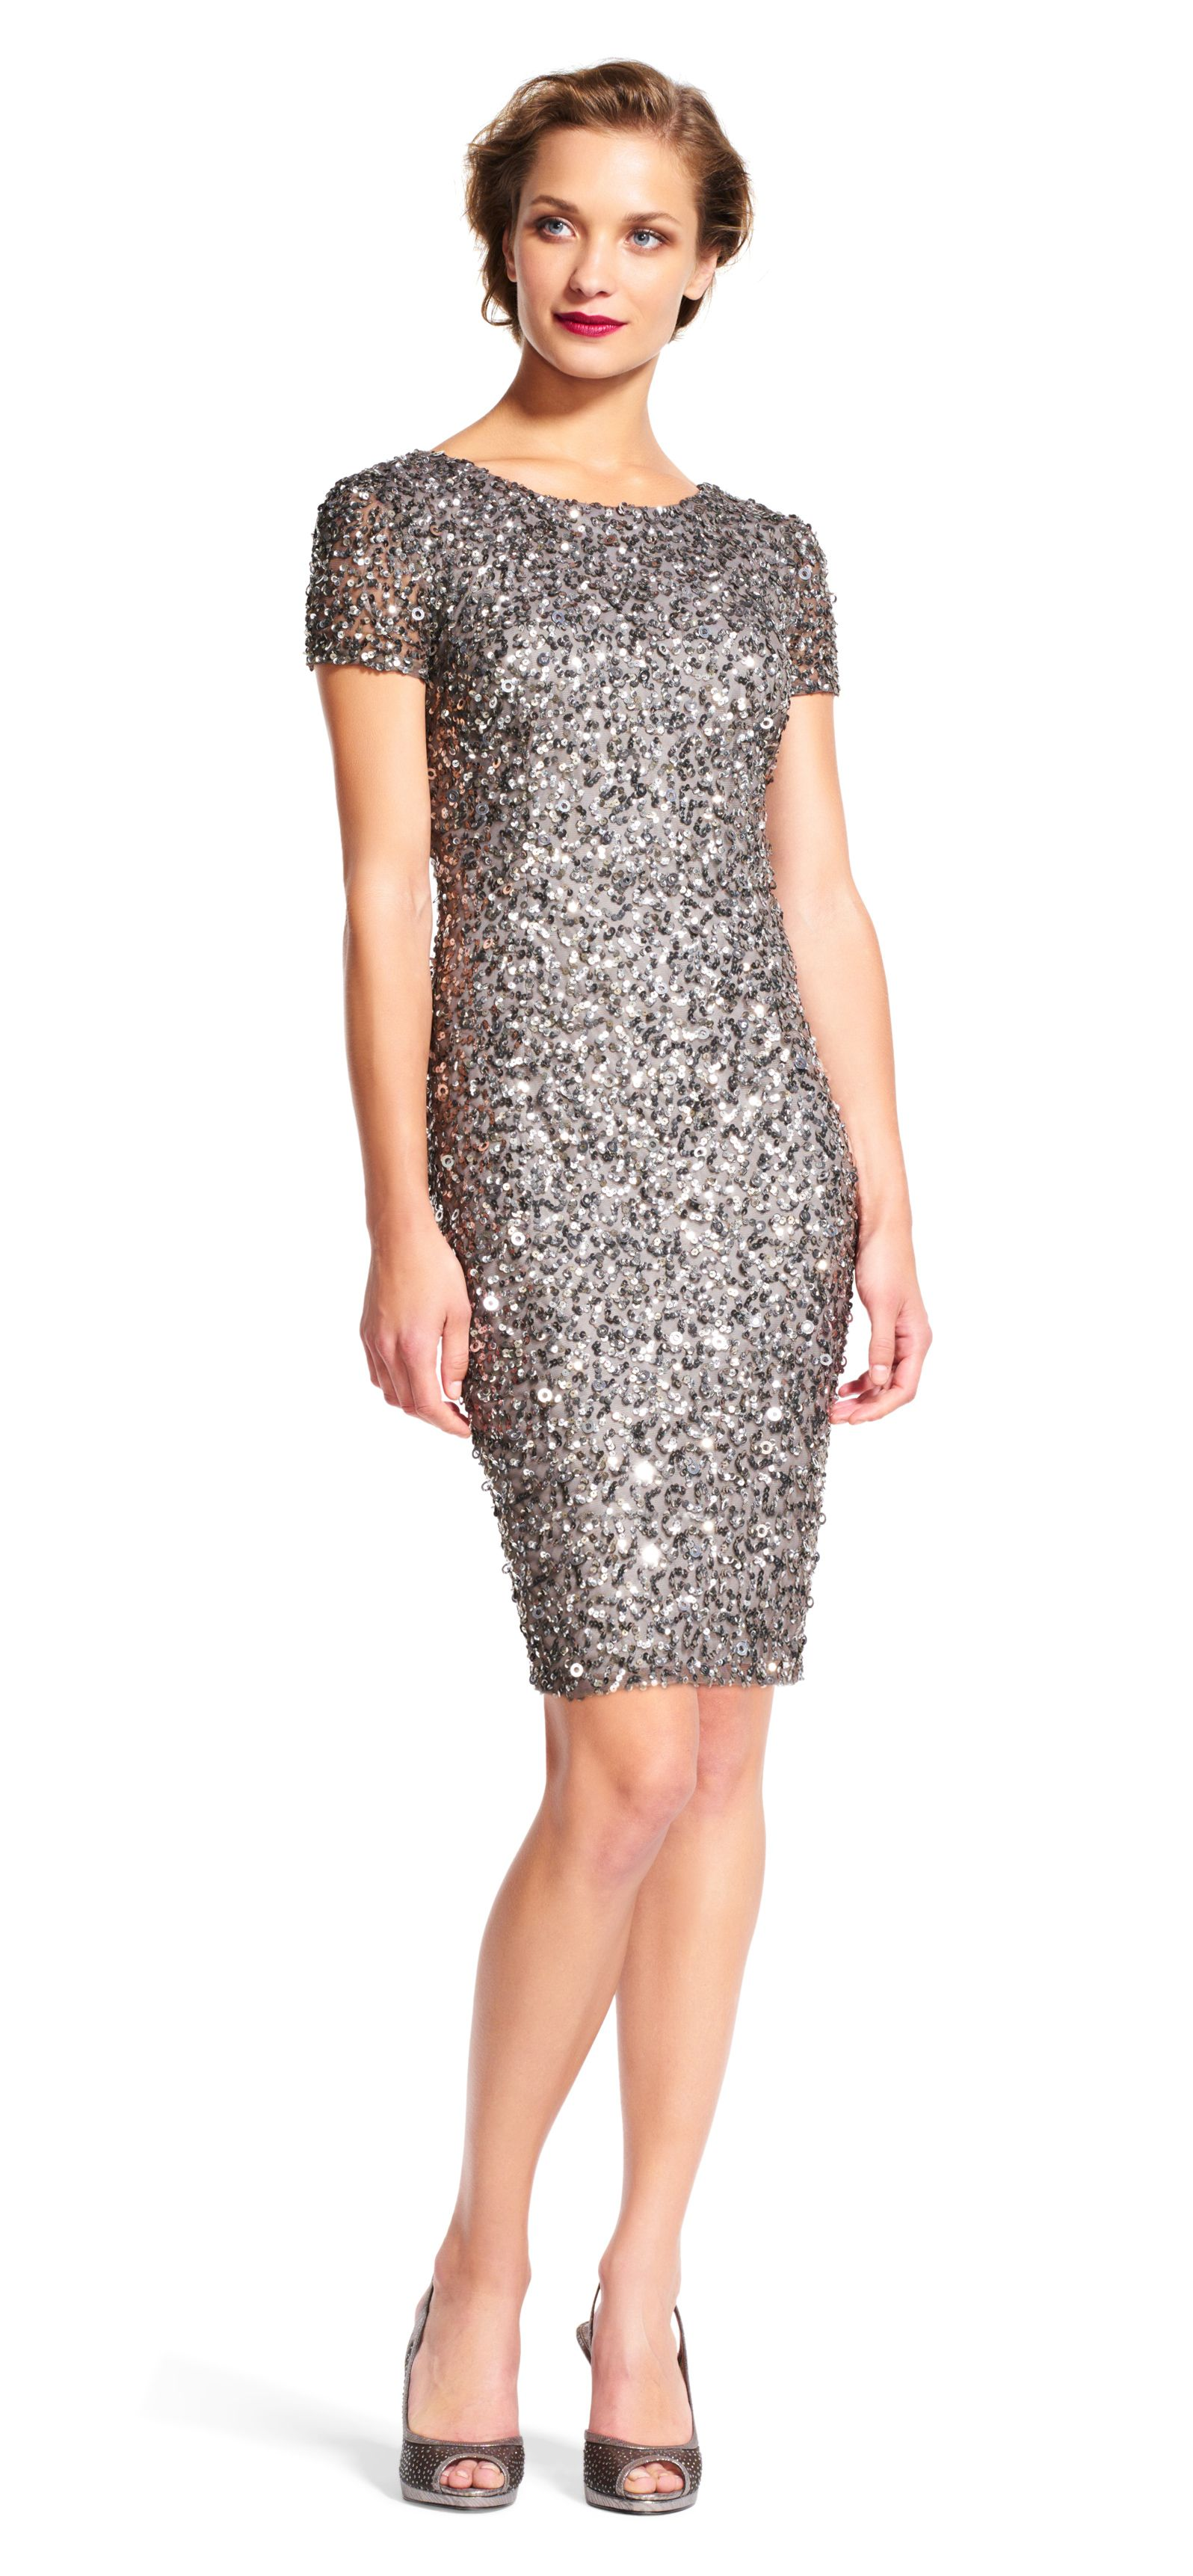 f8f2c770271 Adrianna Papell beaded cocktail dress